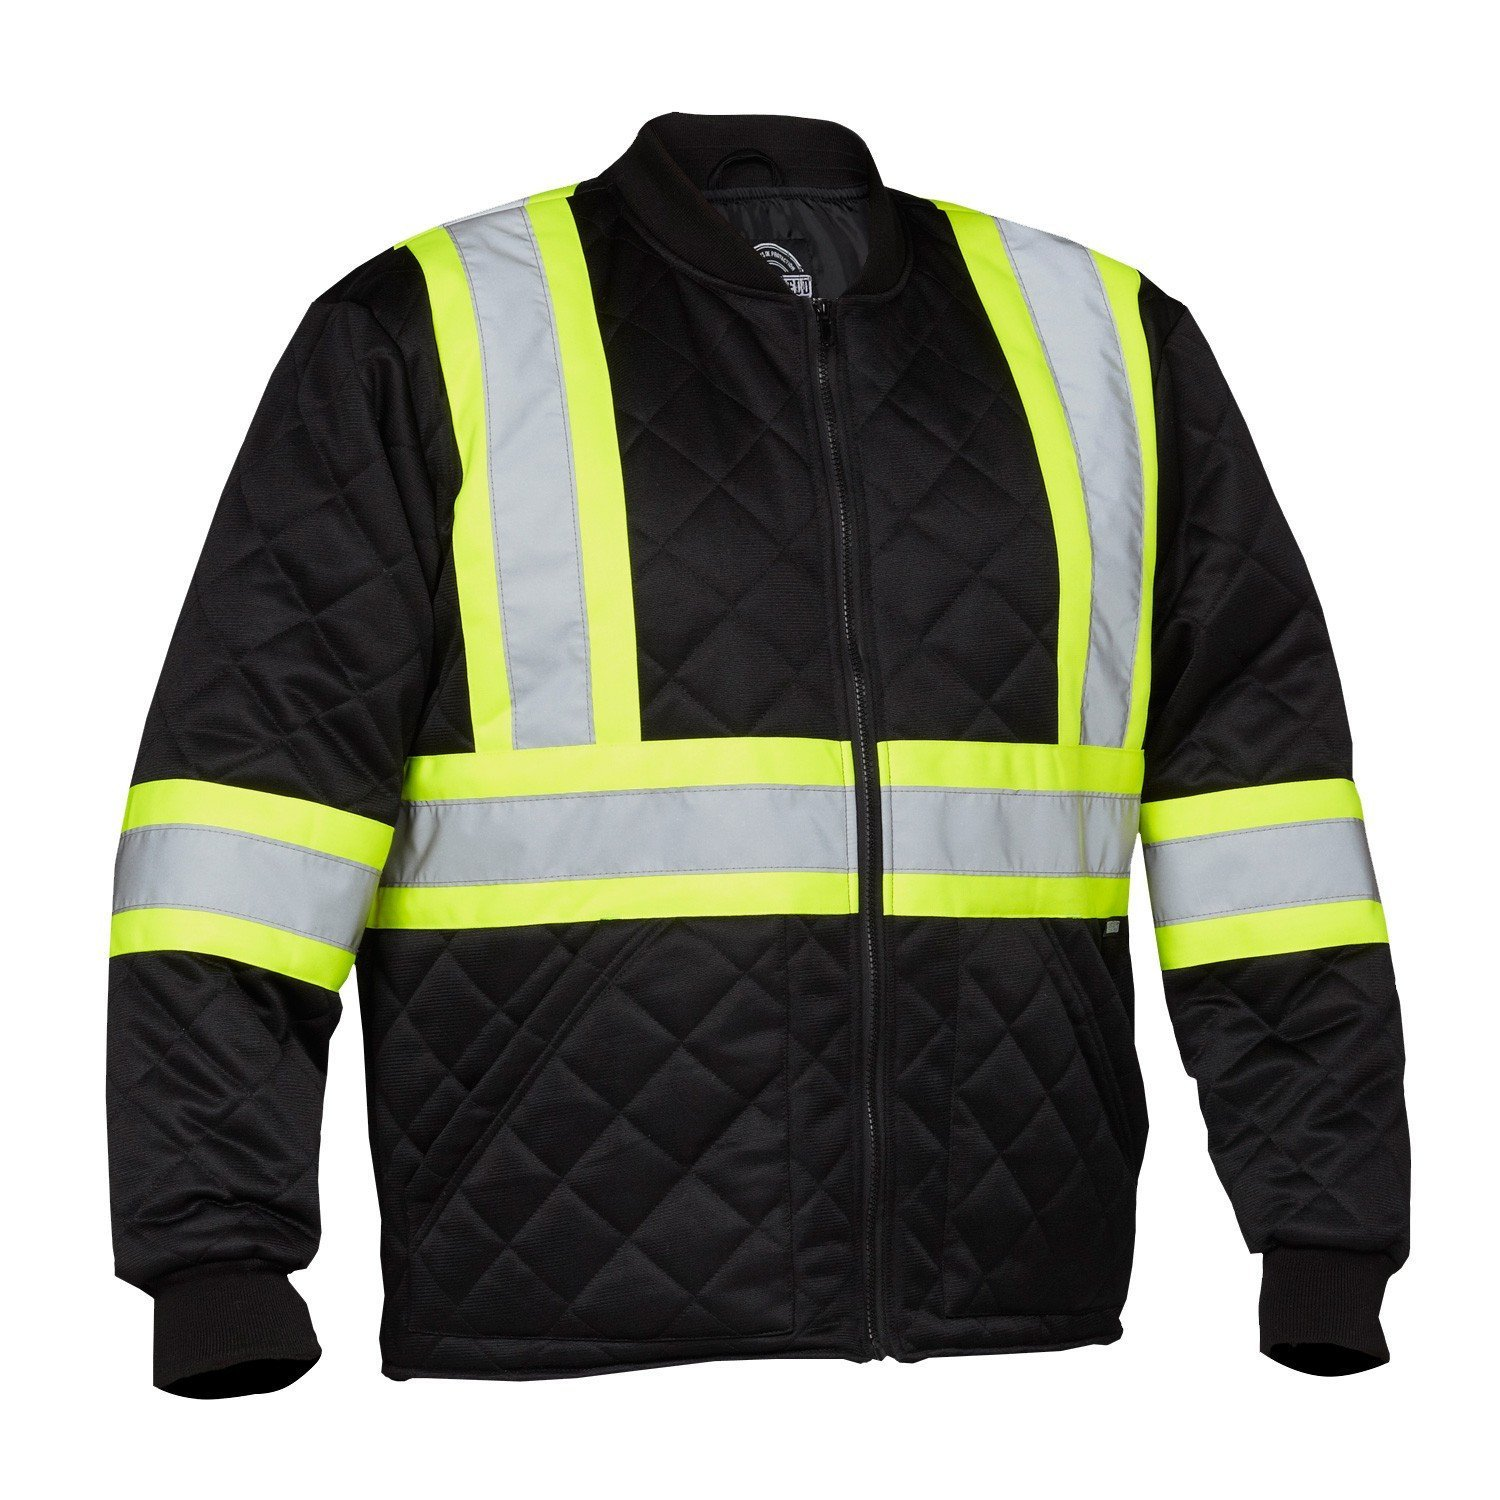 Forcefield Hi-Vis Safety Freezer Jacket 024-FJQBK